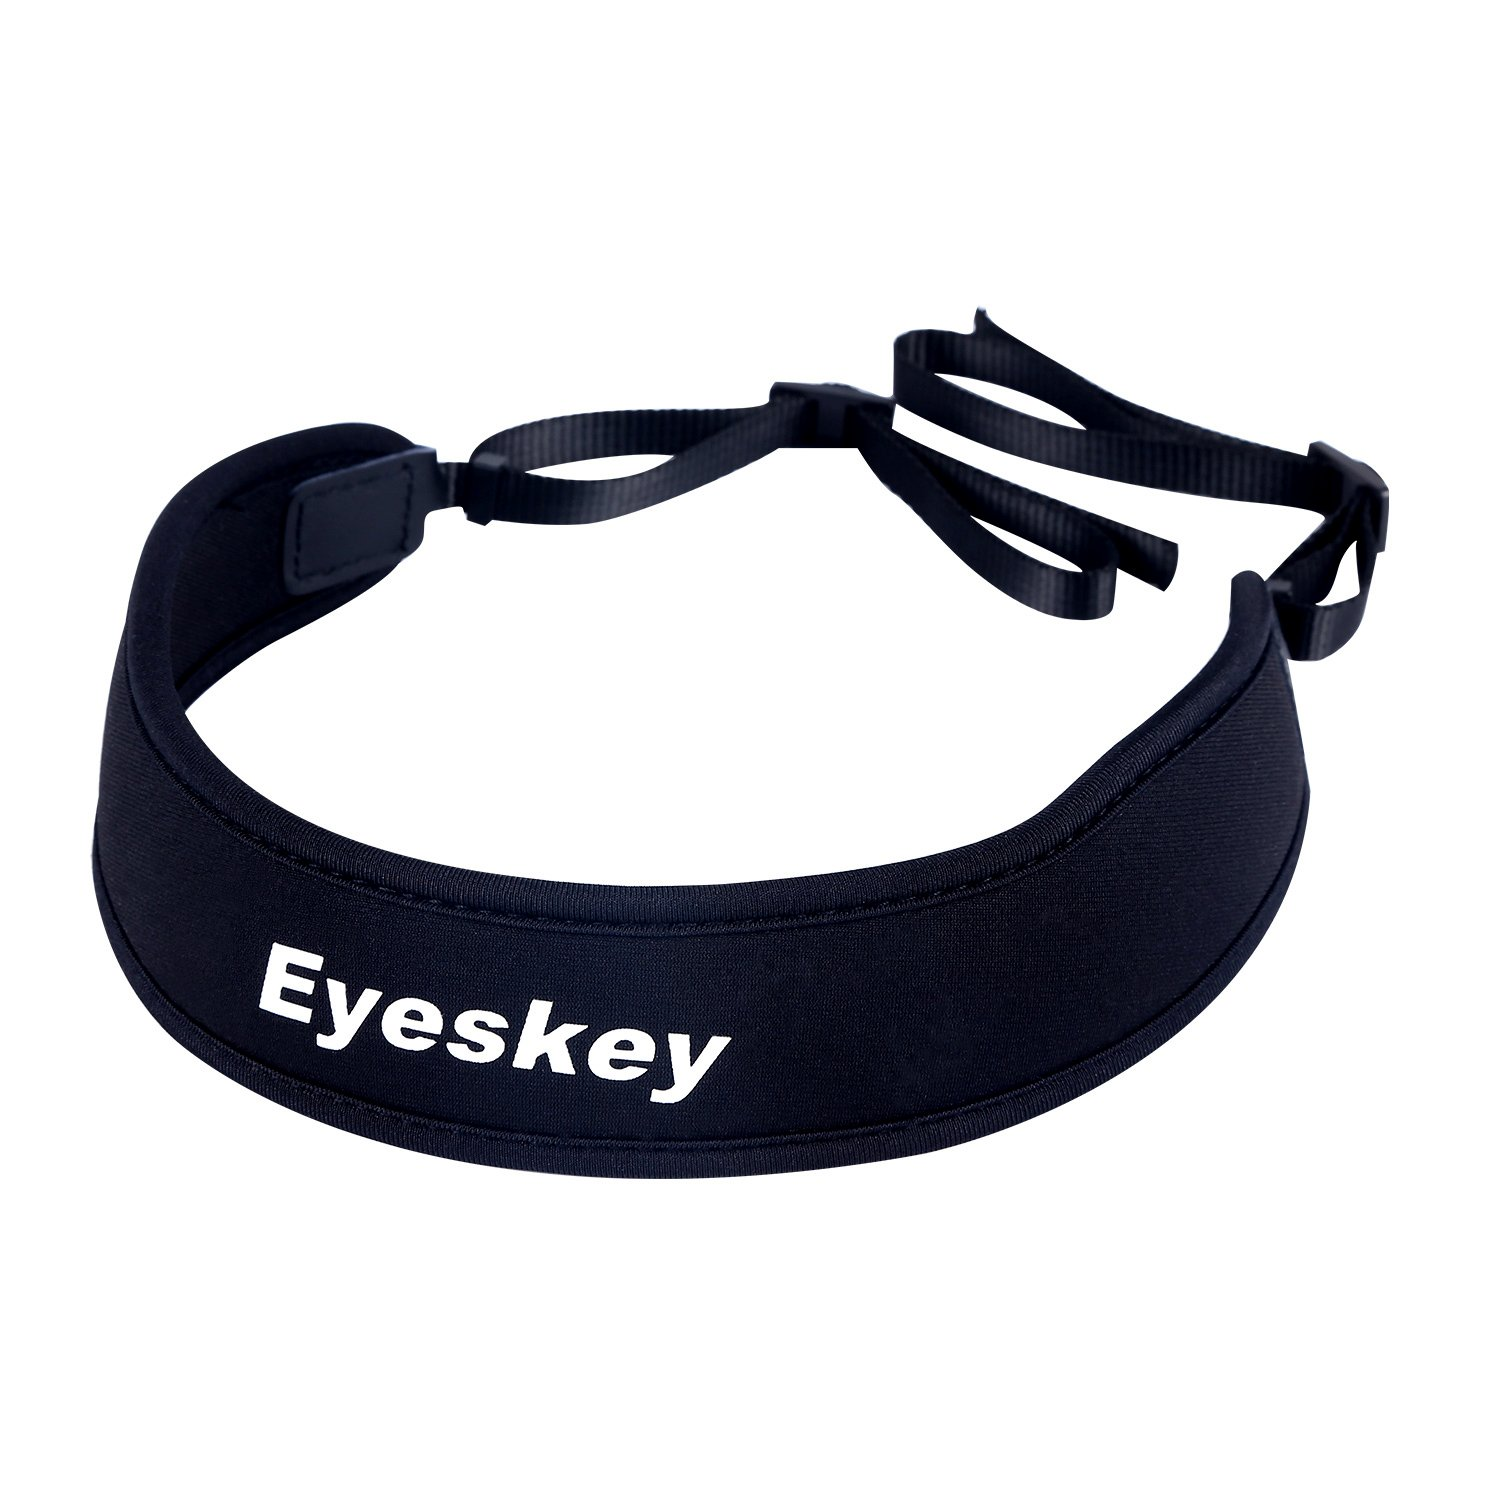 Eyeskey Soft Black Universal Camera/Binoculars Shoulder Strap Neck Belt, Comfortable and Stylish, High Quality